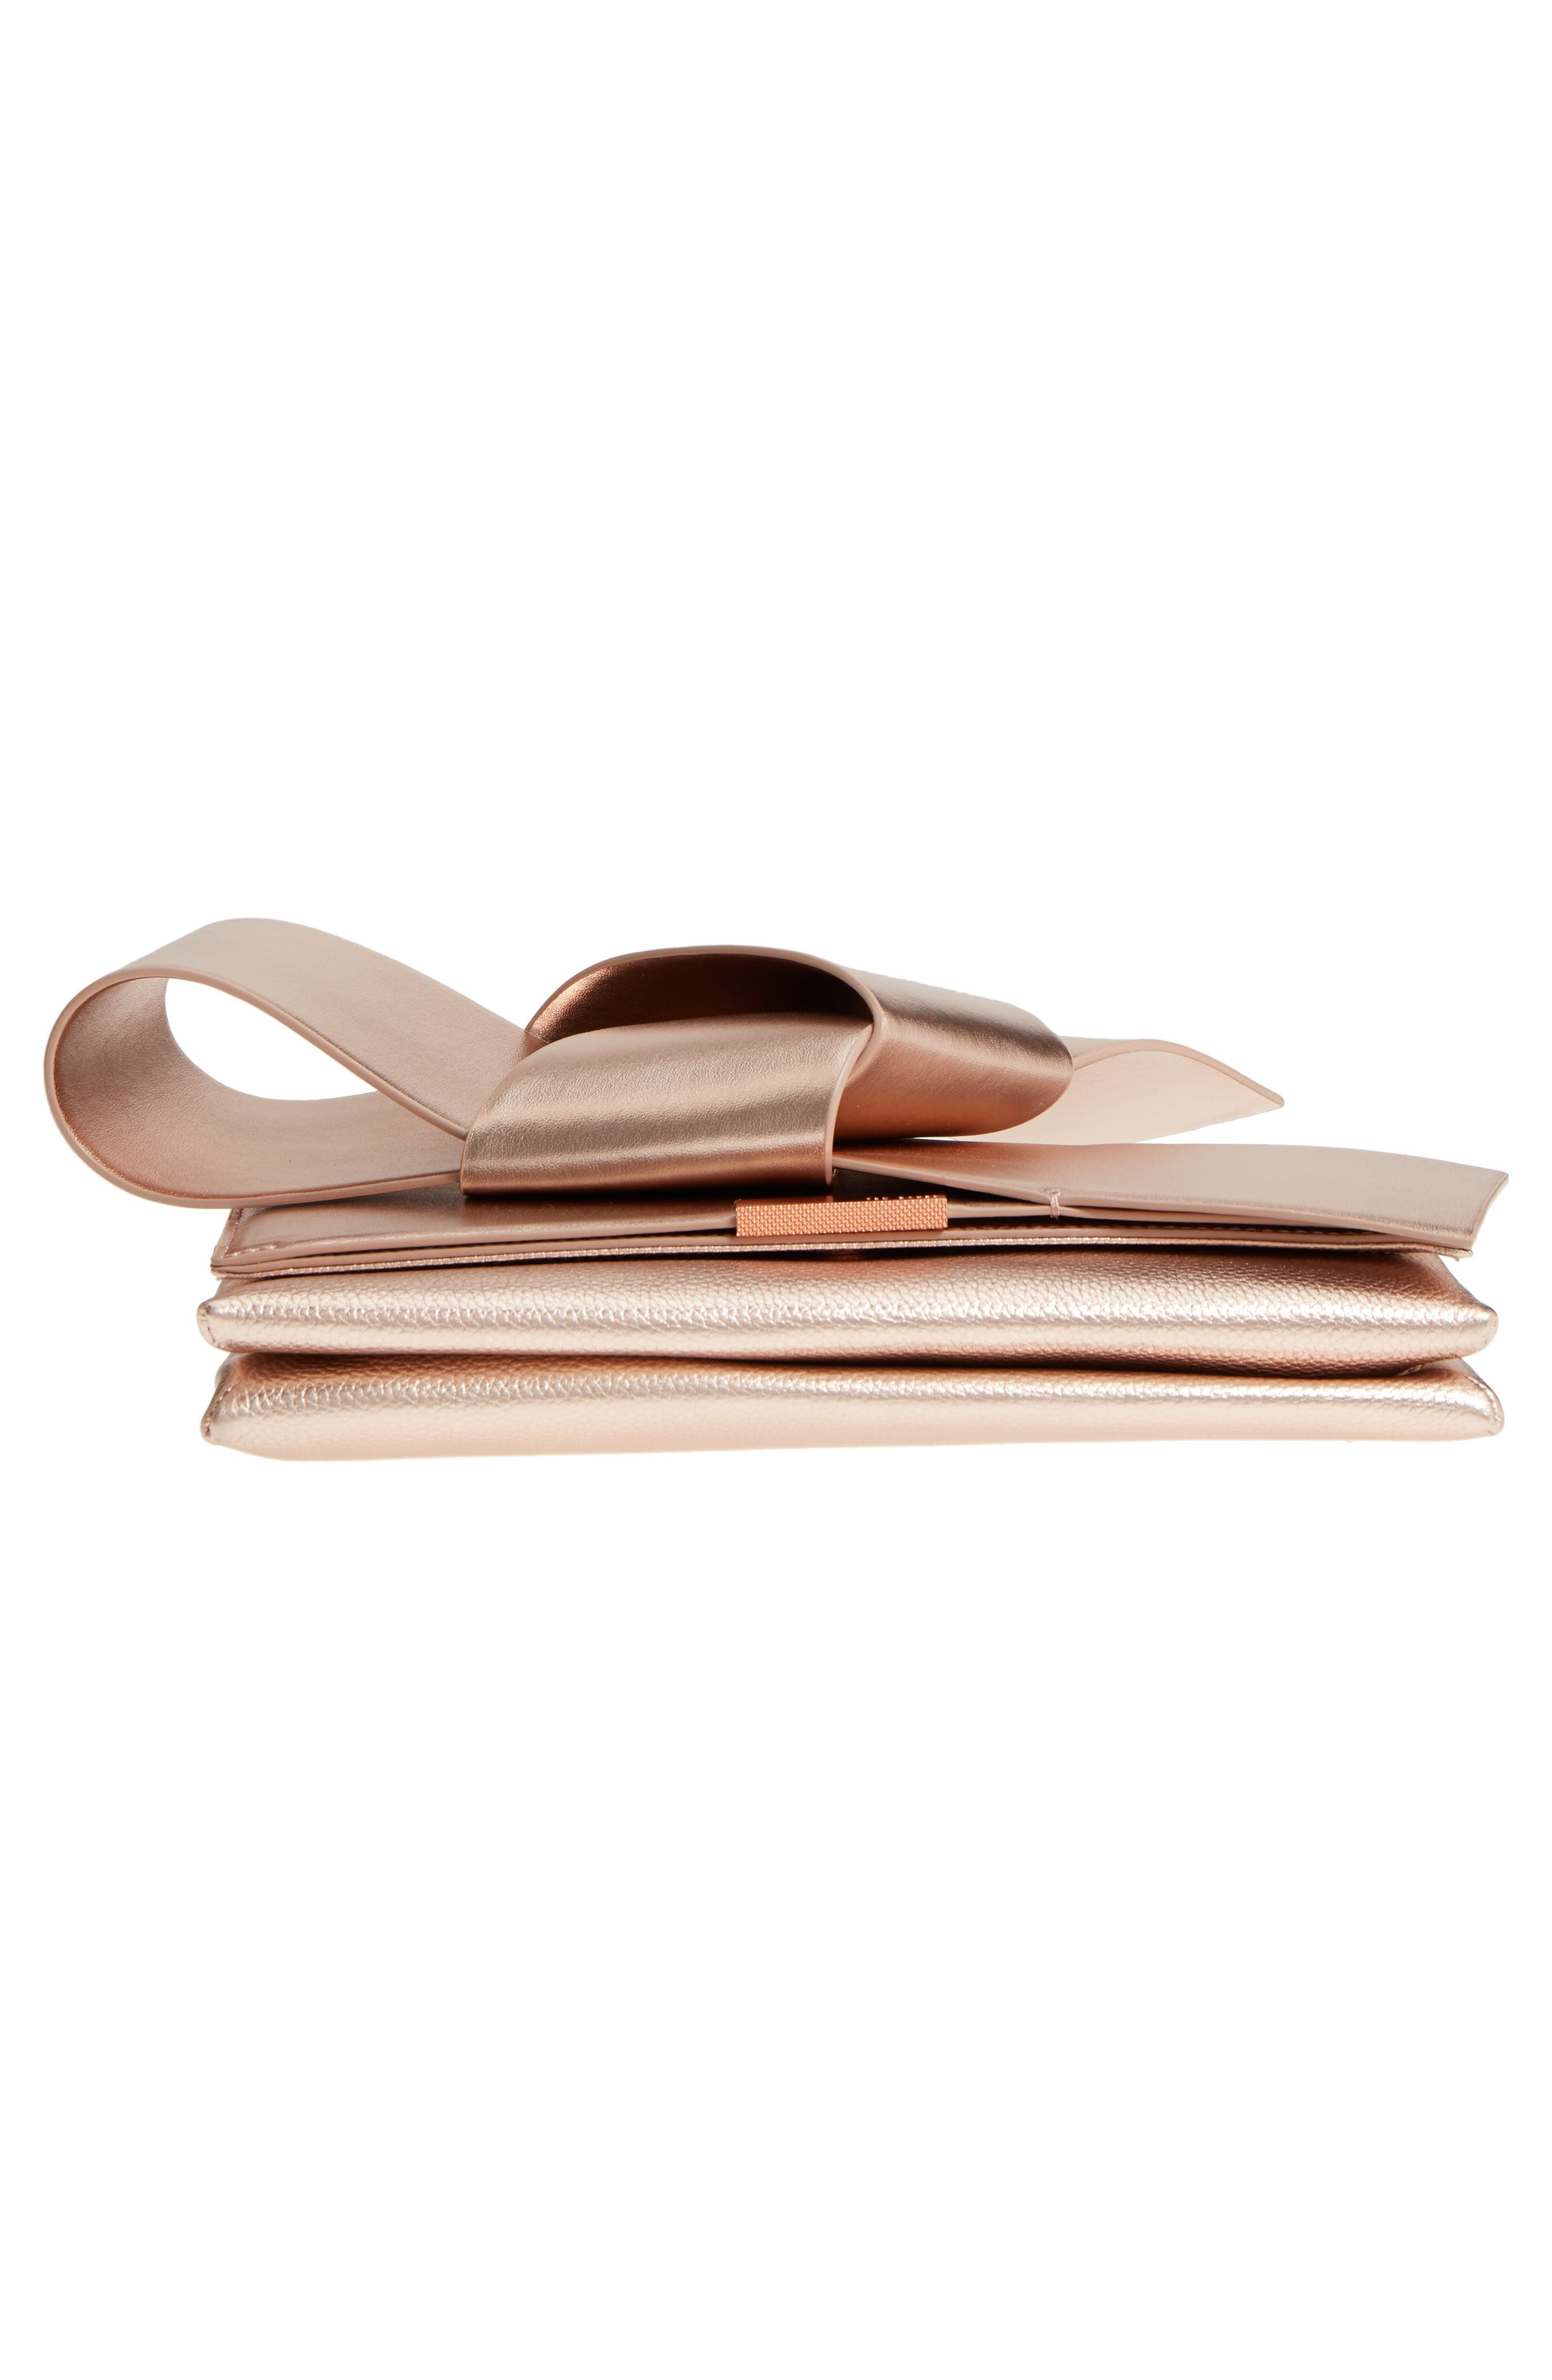 Knotted Bow Leather Clutch,                             Alternate thumbnail 6, color,                             Rose Gold